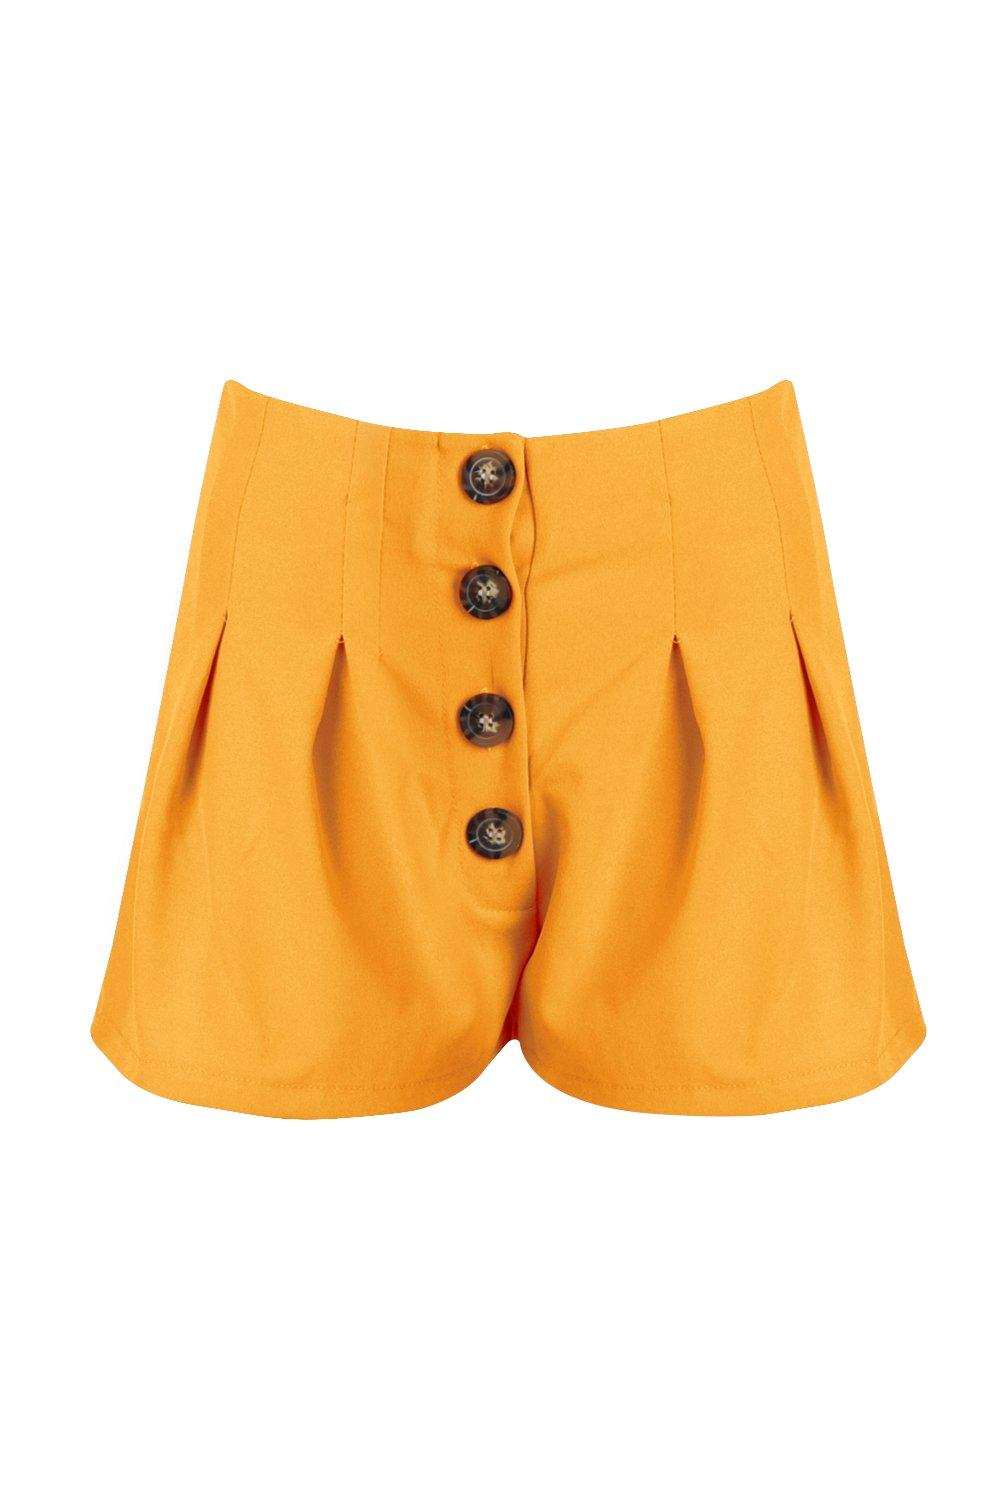 5d79f3ddf1 Horn Button Pleated High Waist Shorts. Hover to zoom. Close video